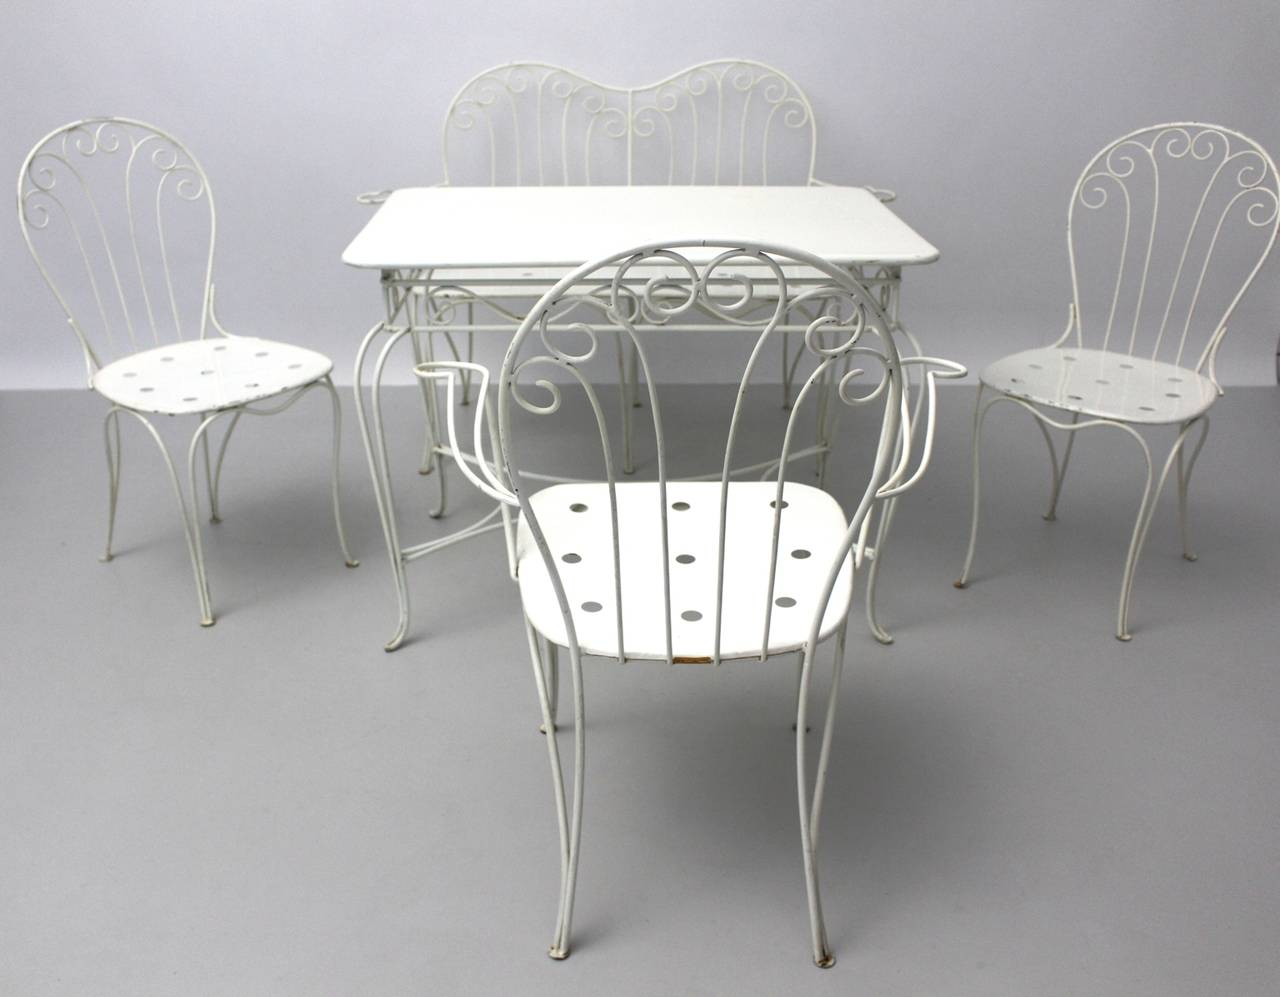 Mid-Century Modern Mid Century White Metal Seating Group by Stanislaus Karasek and Co 1950s Austria For Sale